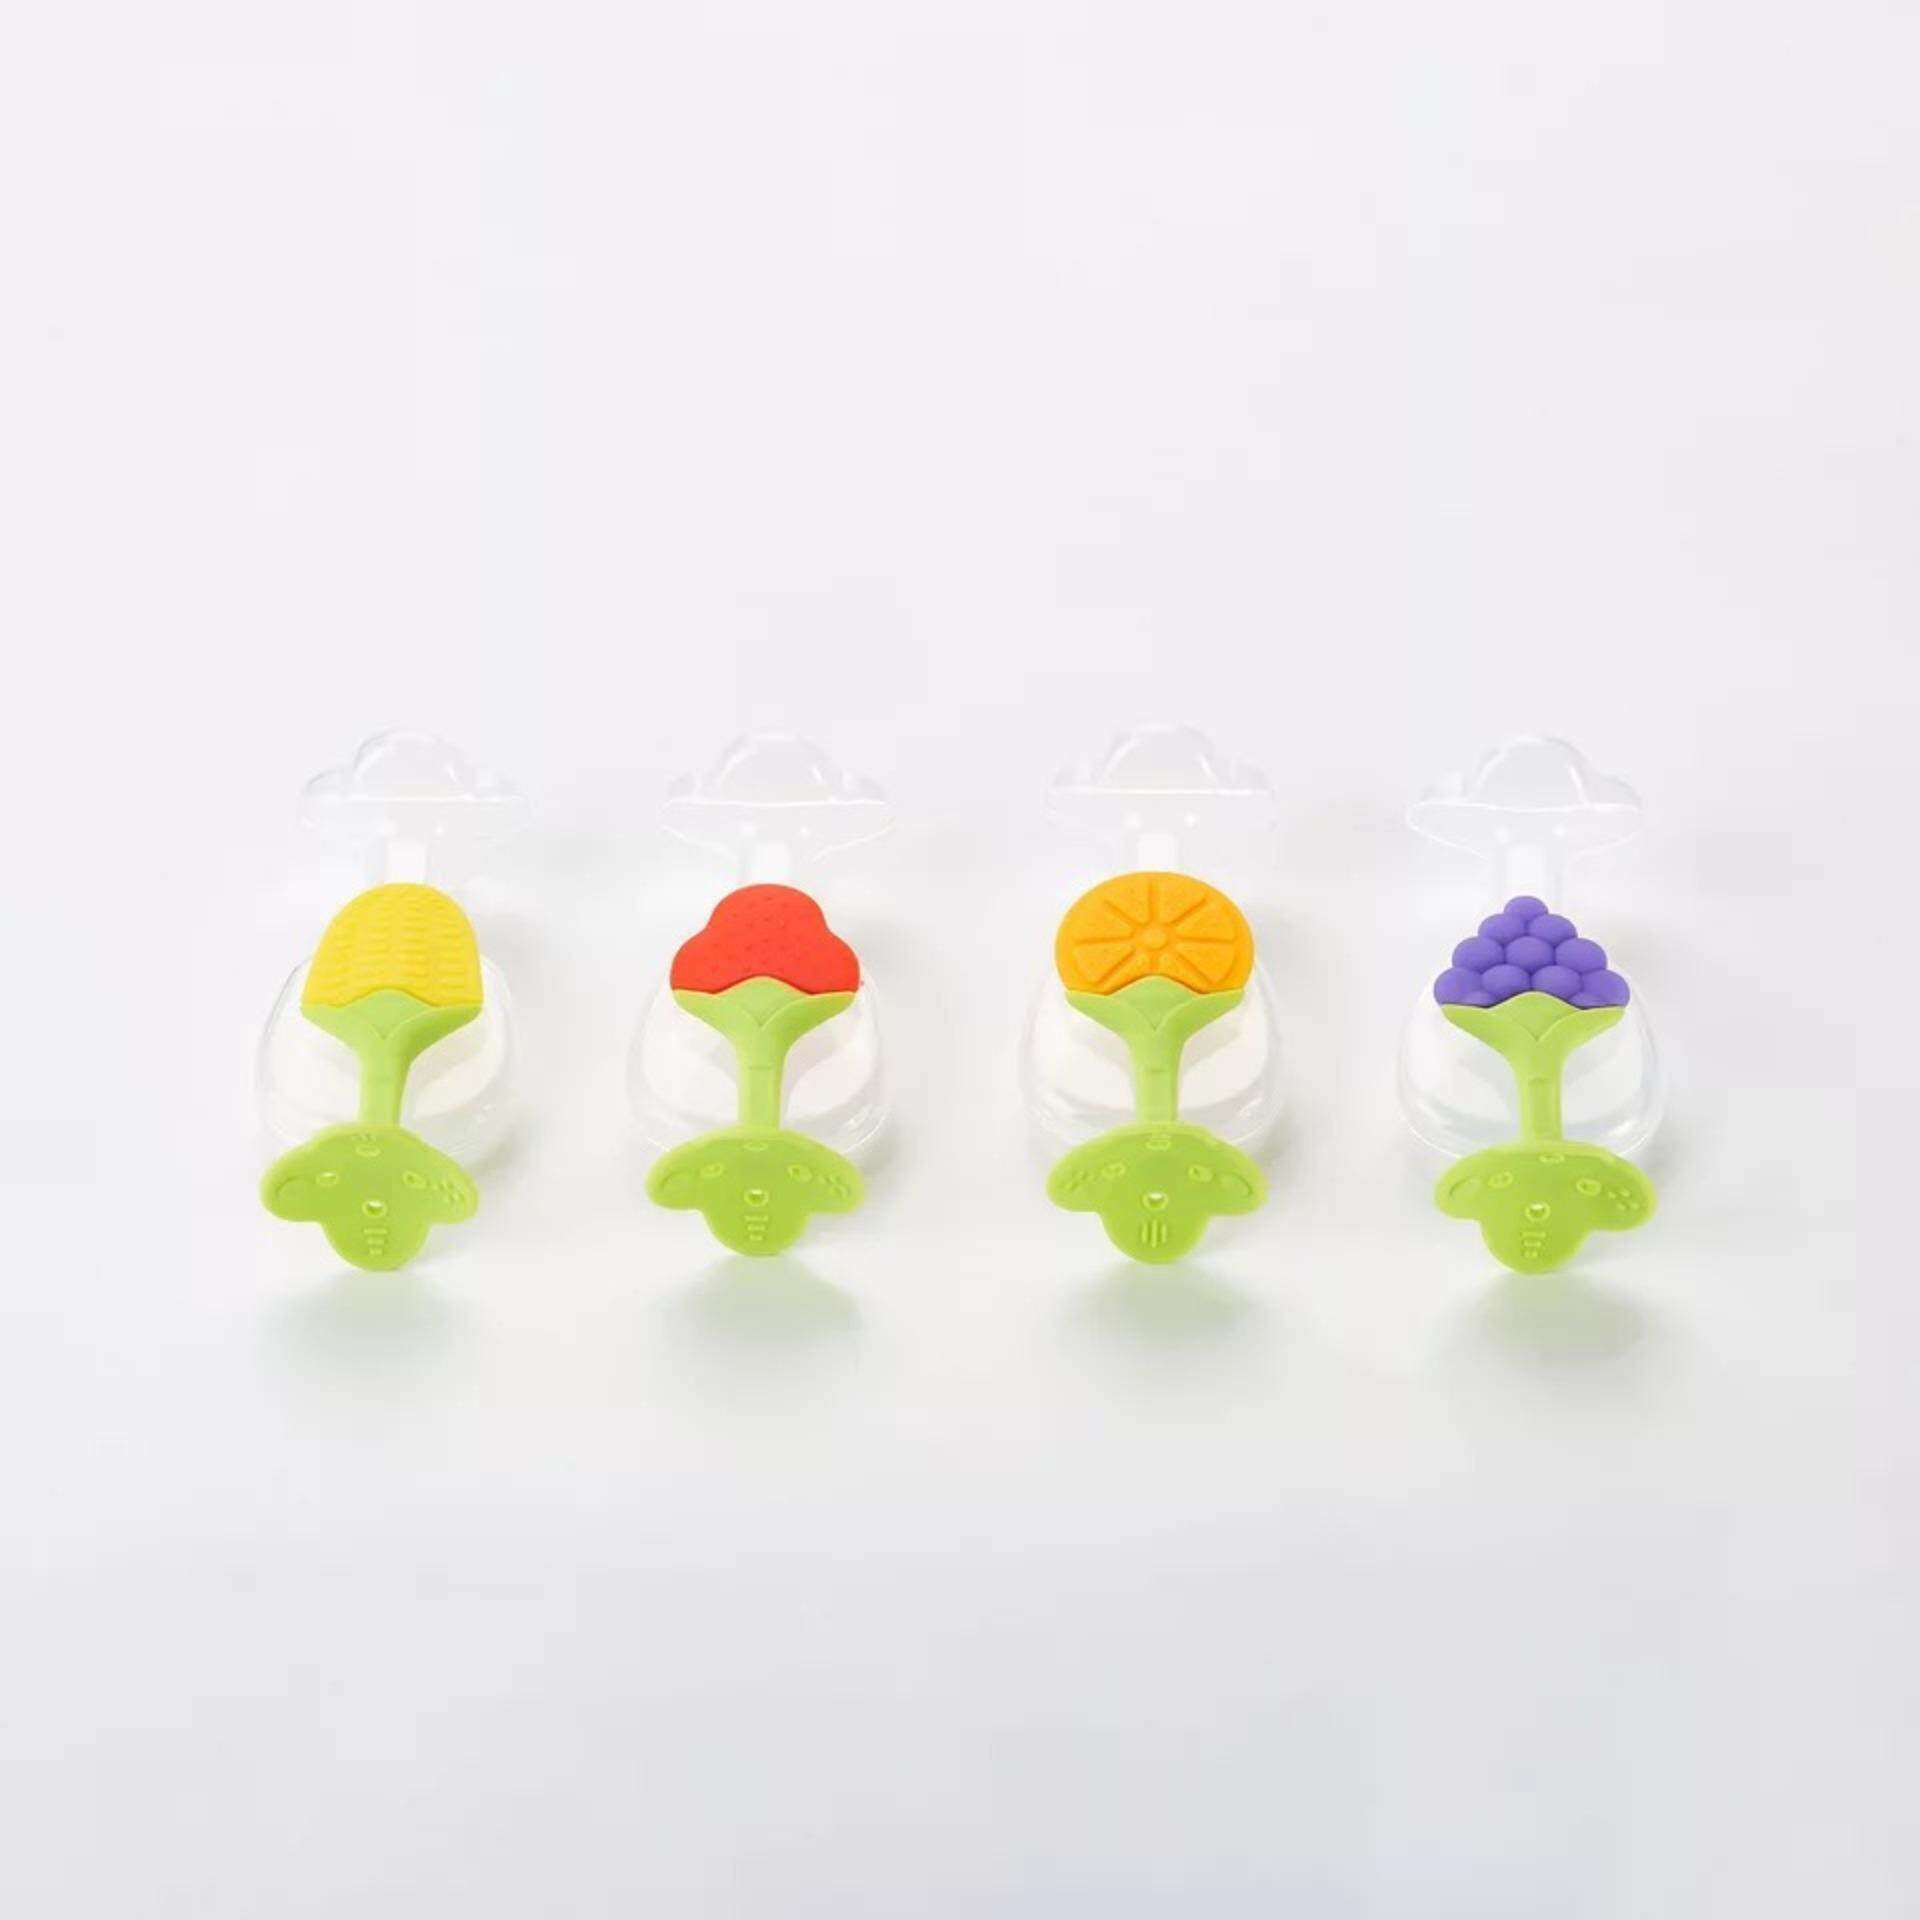 Cute Infant Baby Silicone Fruit Teether Tree Teether Teeth Training Tool